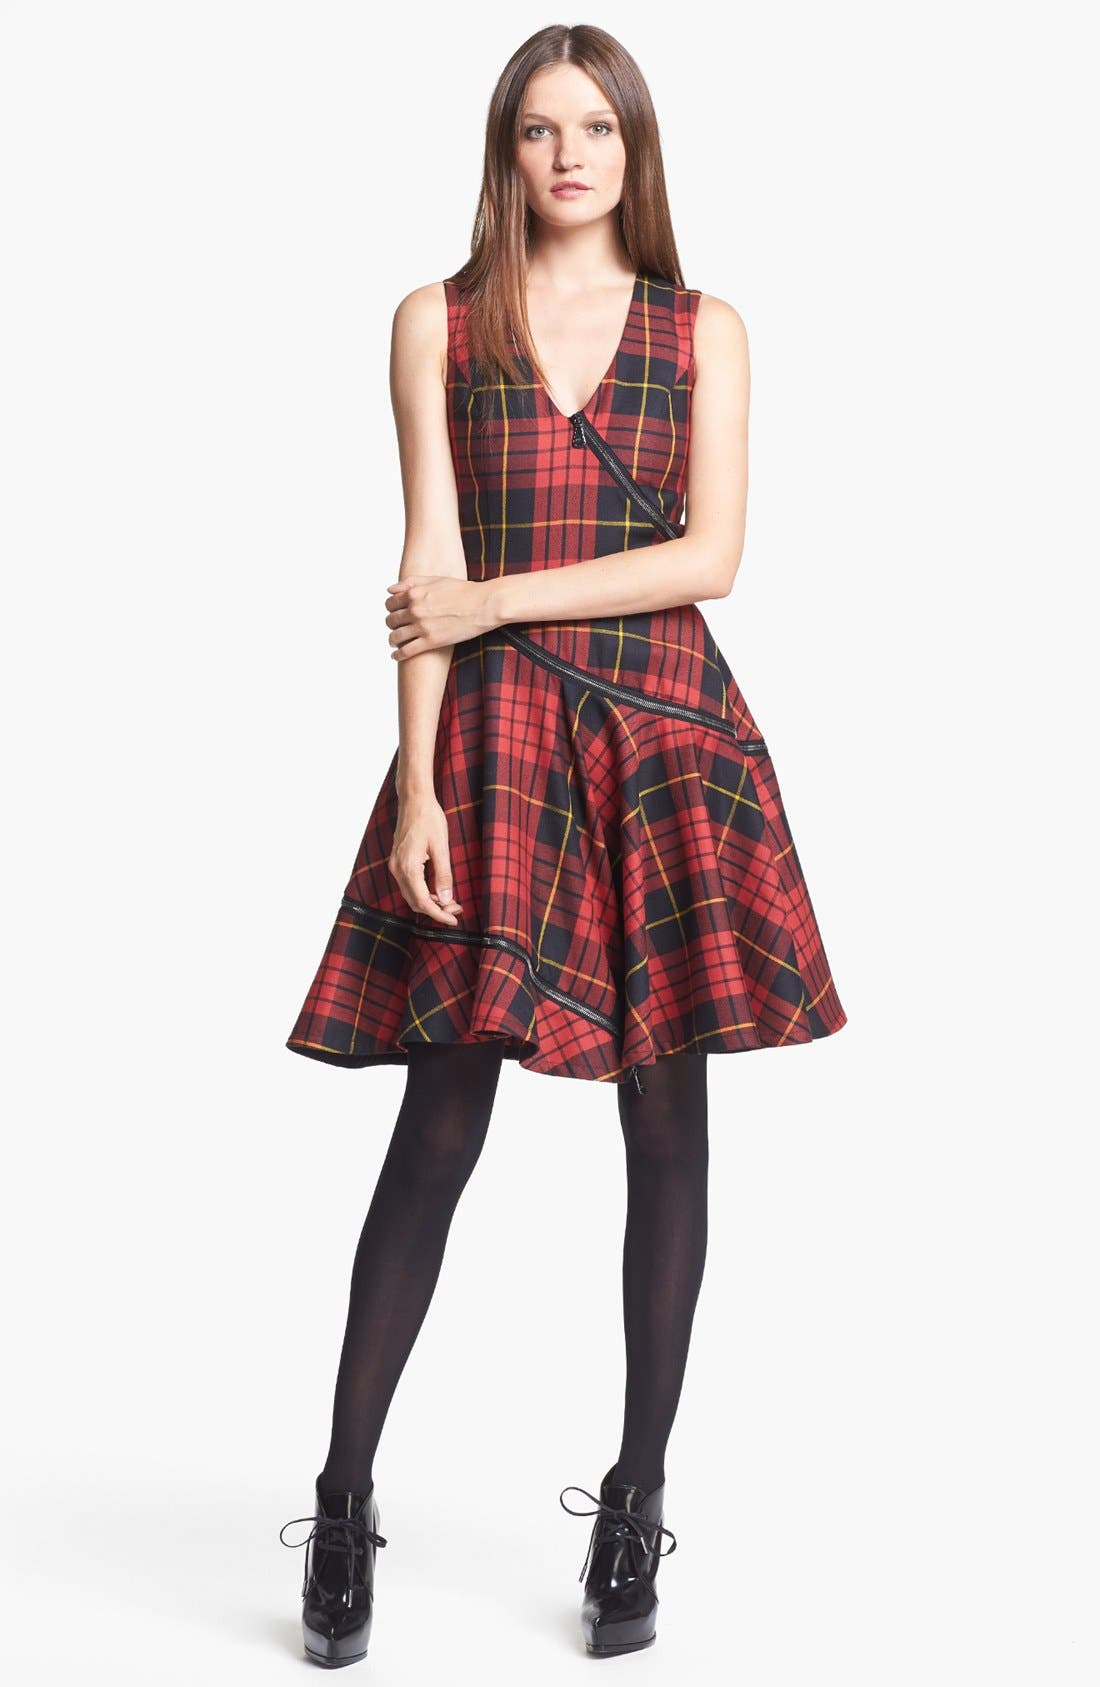 Alternate Image 1 Selected - McQ by Alexander McQueen Tartan Plaid Dress